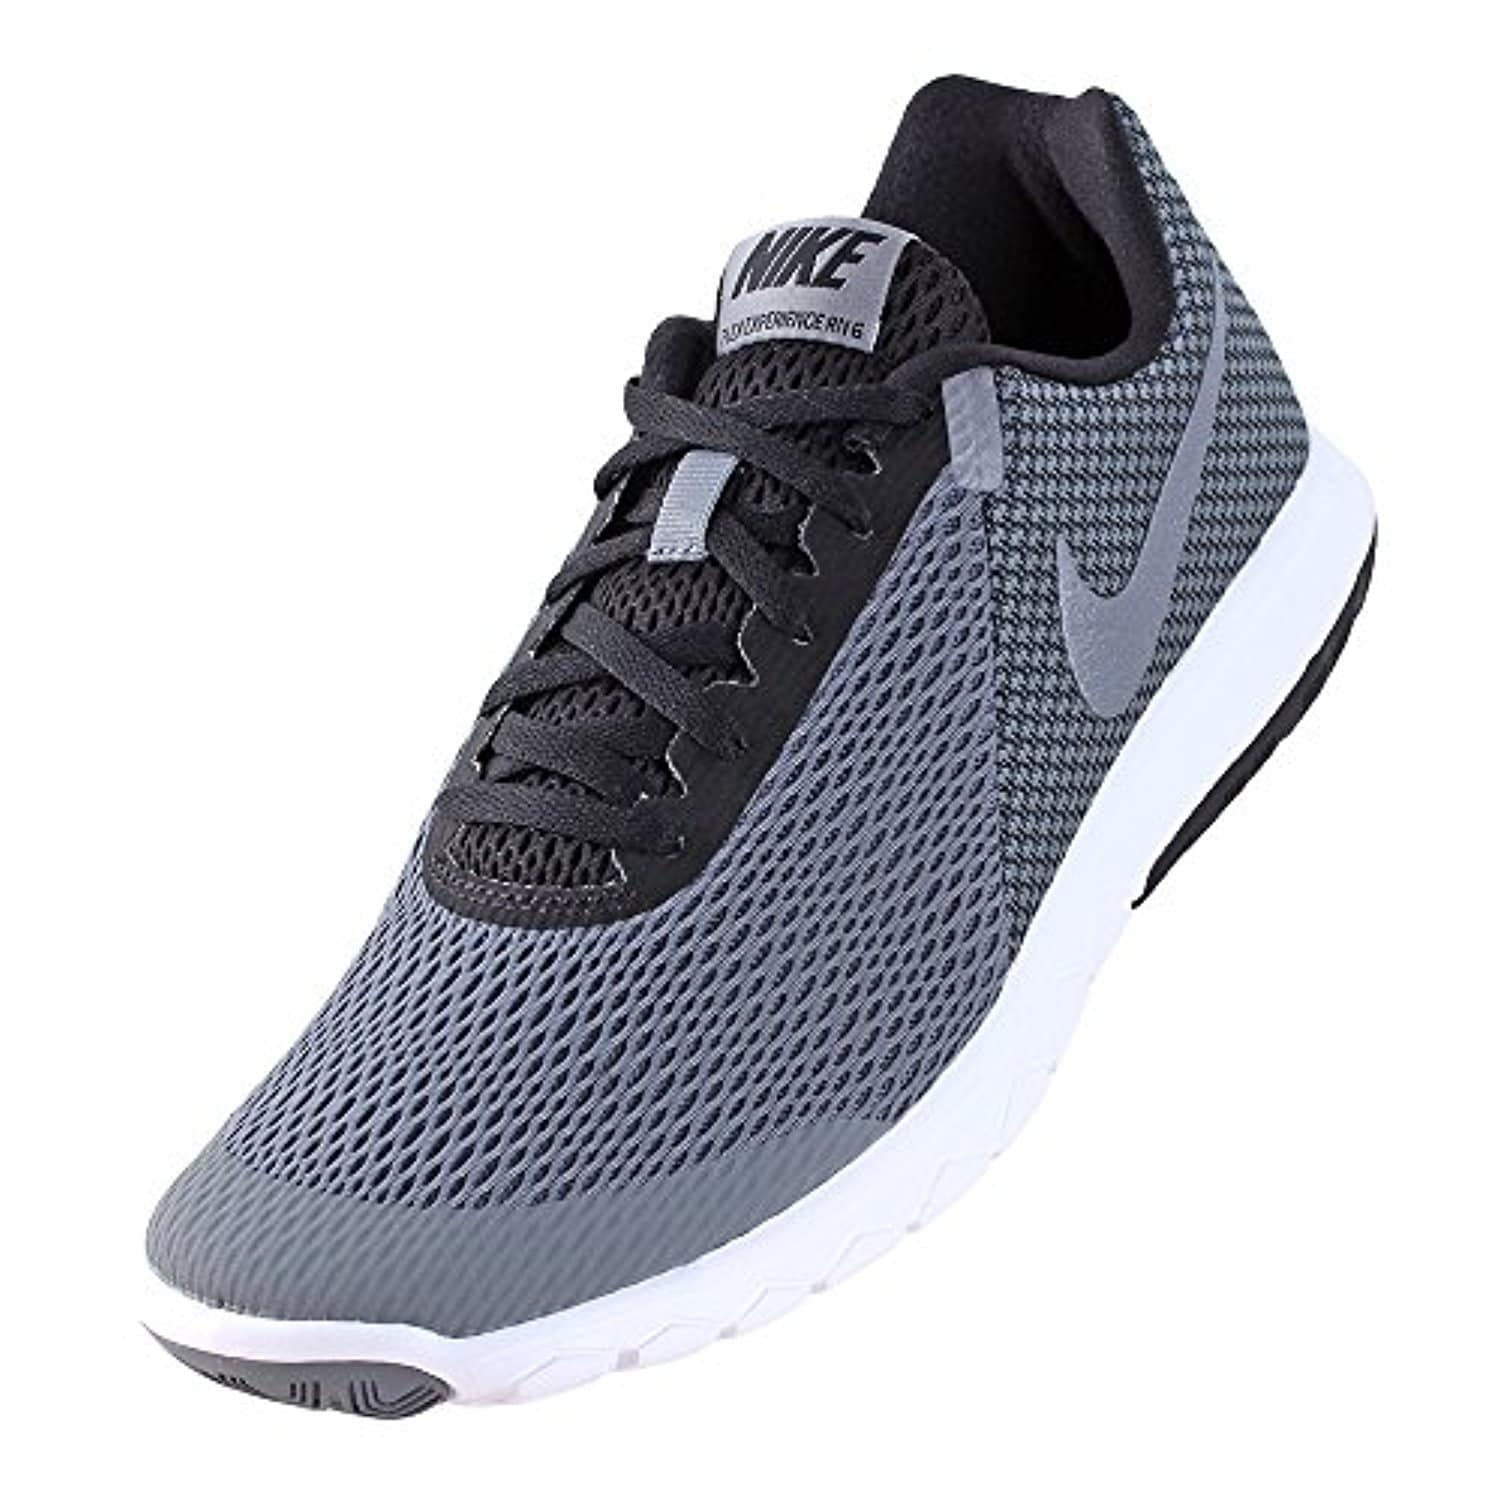 5f35a4d6542d Shop Nike Flex Experience Rn 6 Mens Style  881802-001 Size  10.5 M US -  black black-dark grey - Free Shipping Today - Overstock - 18275435